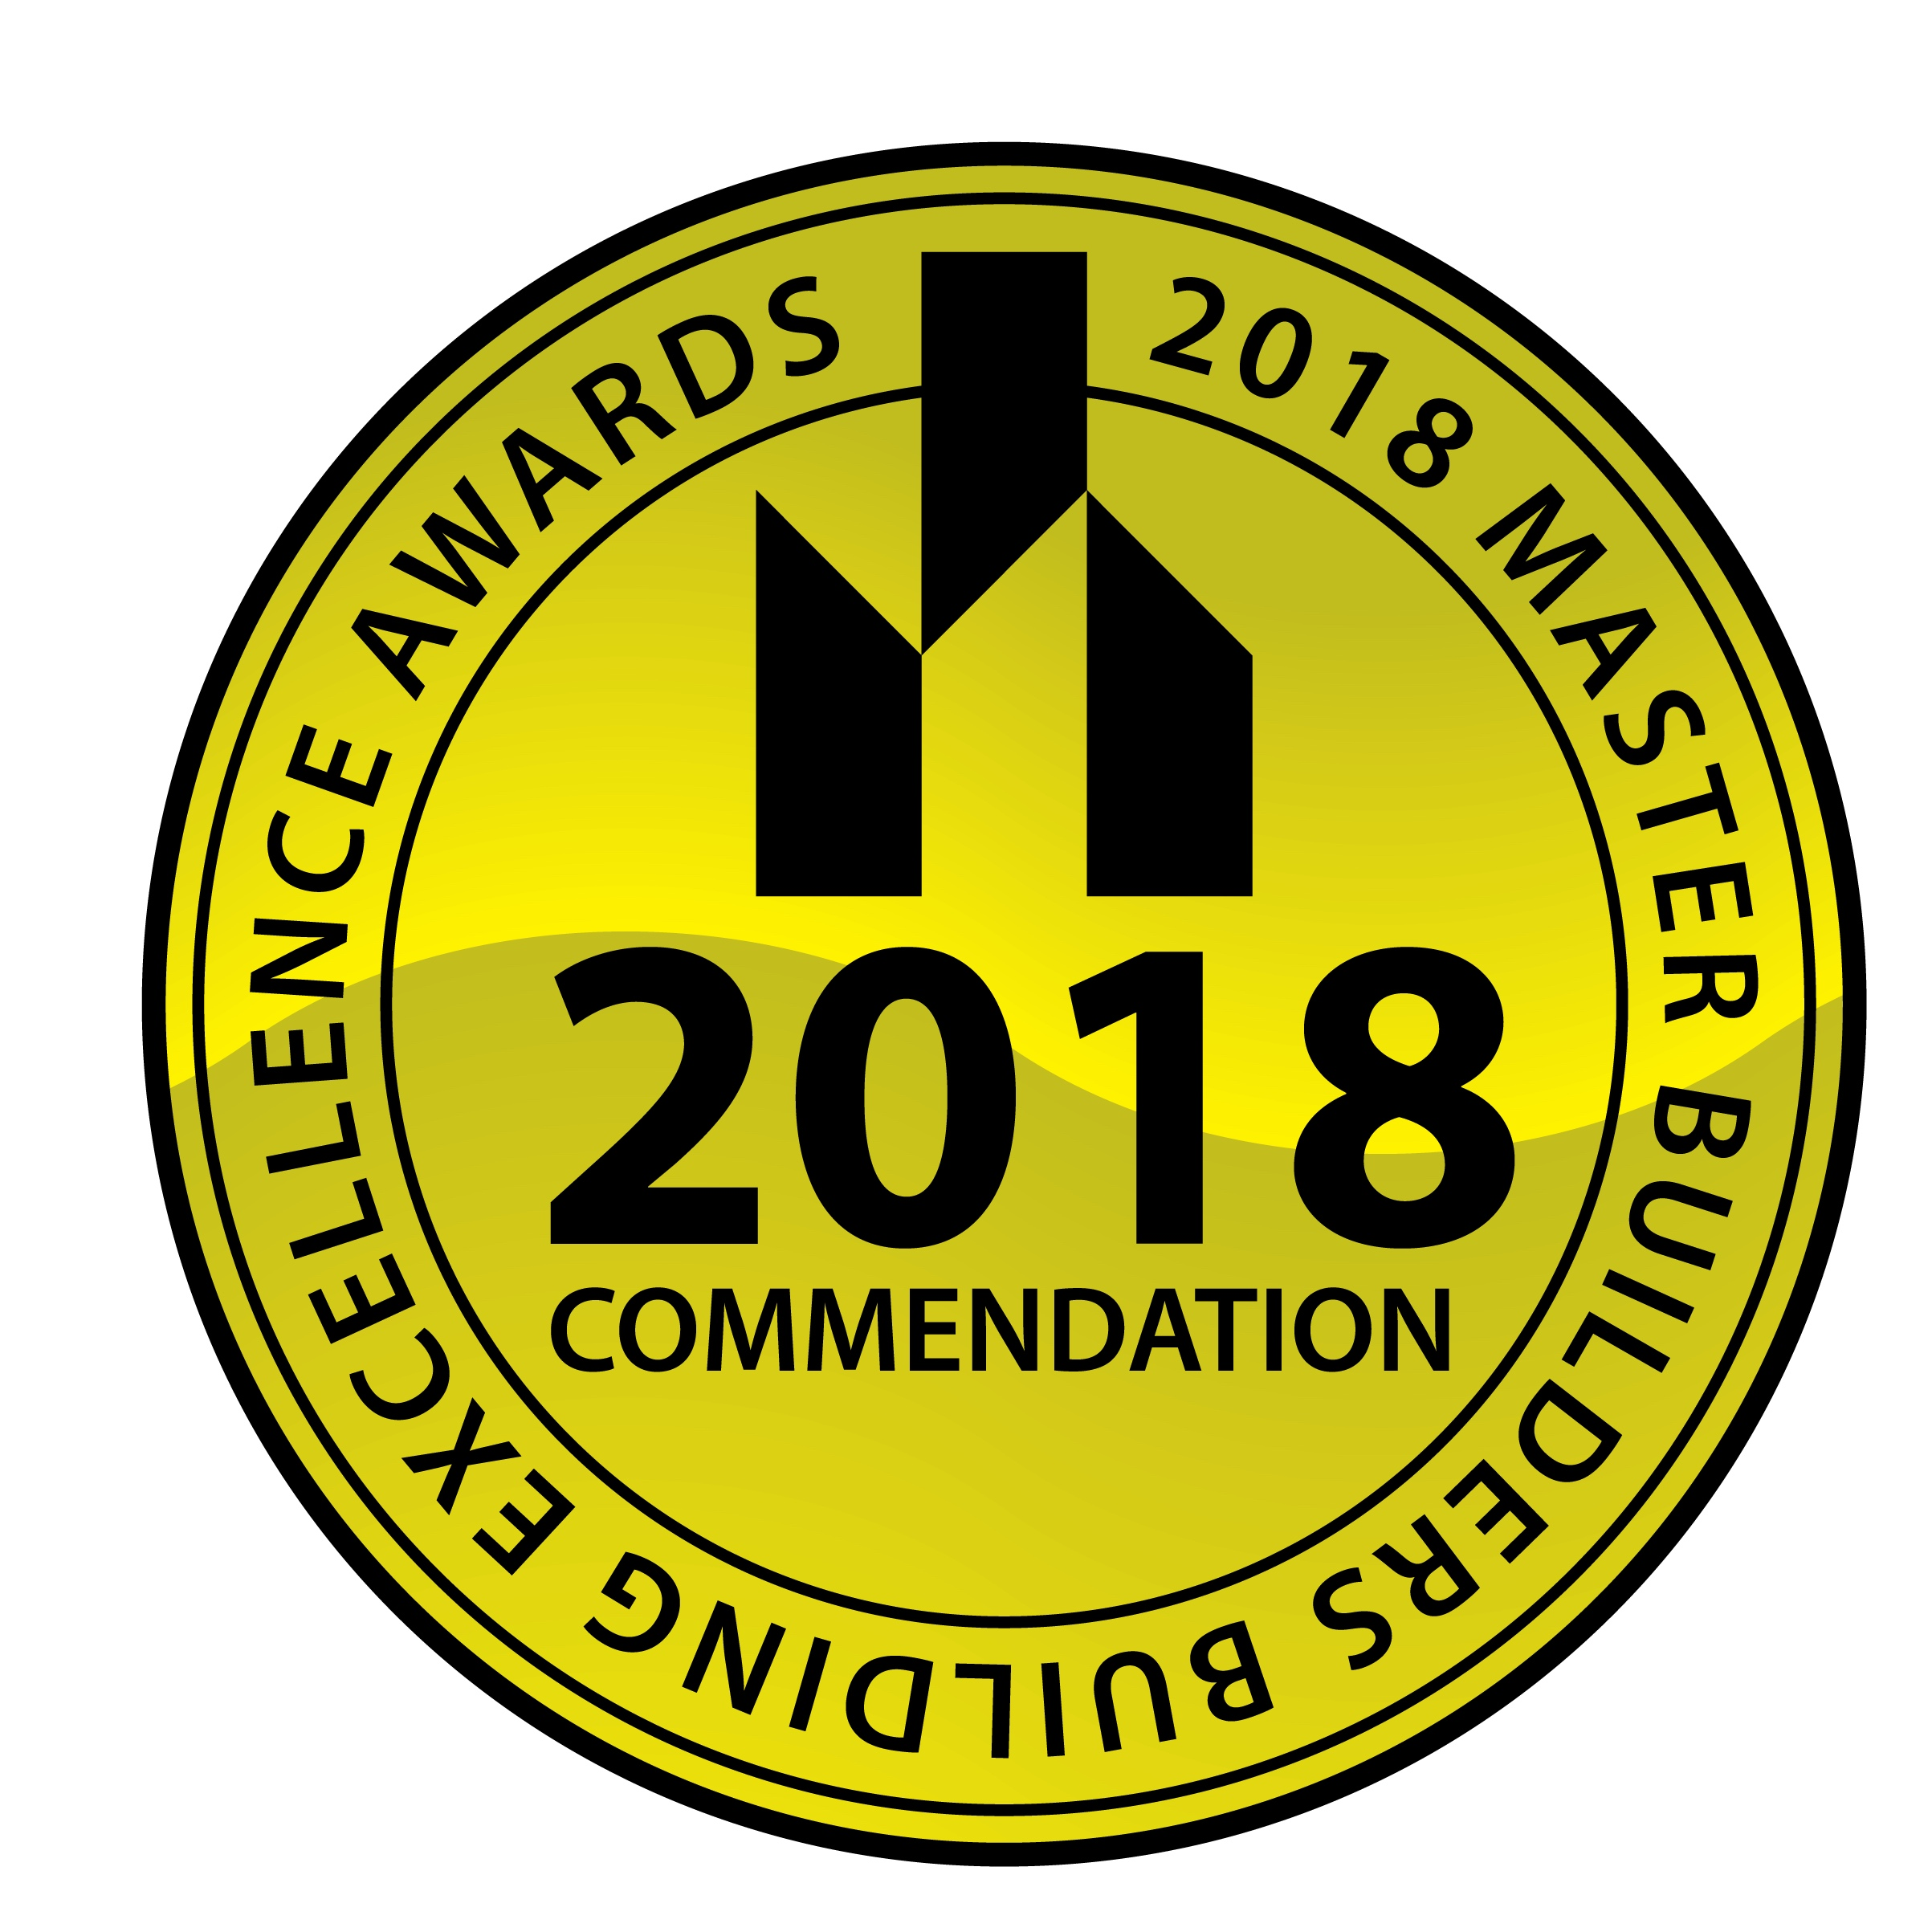 Commendation-2018-Building-Excellence-Awards.jpg